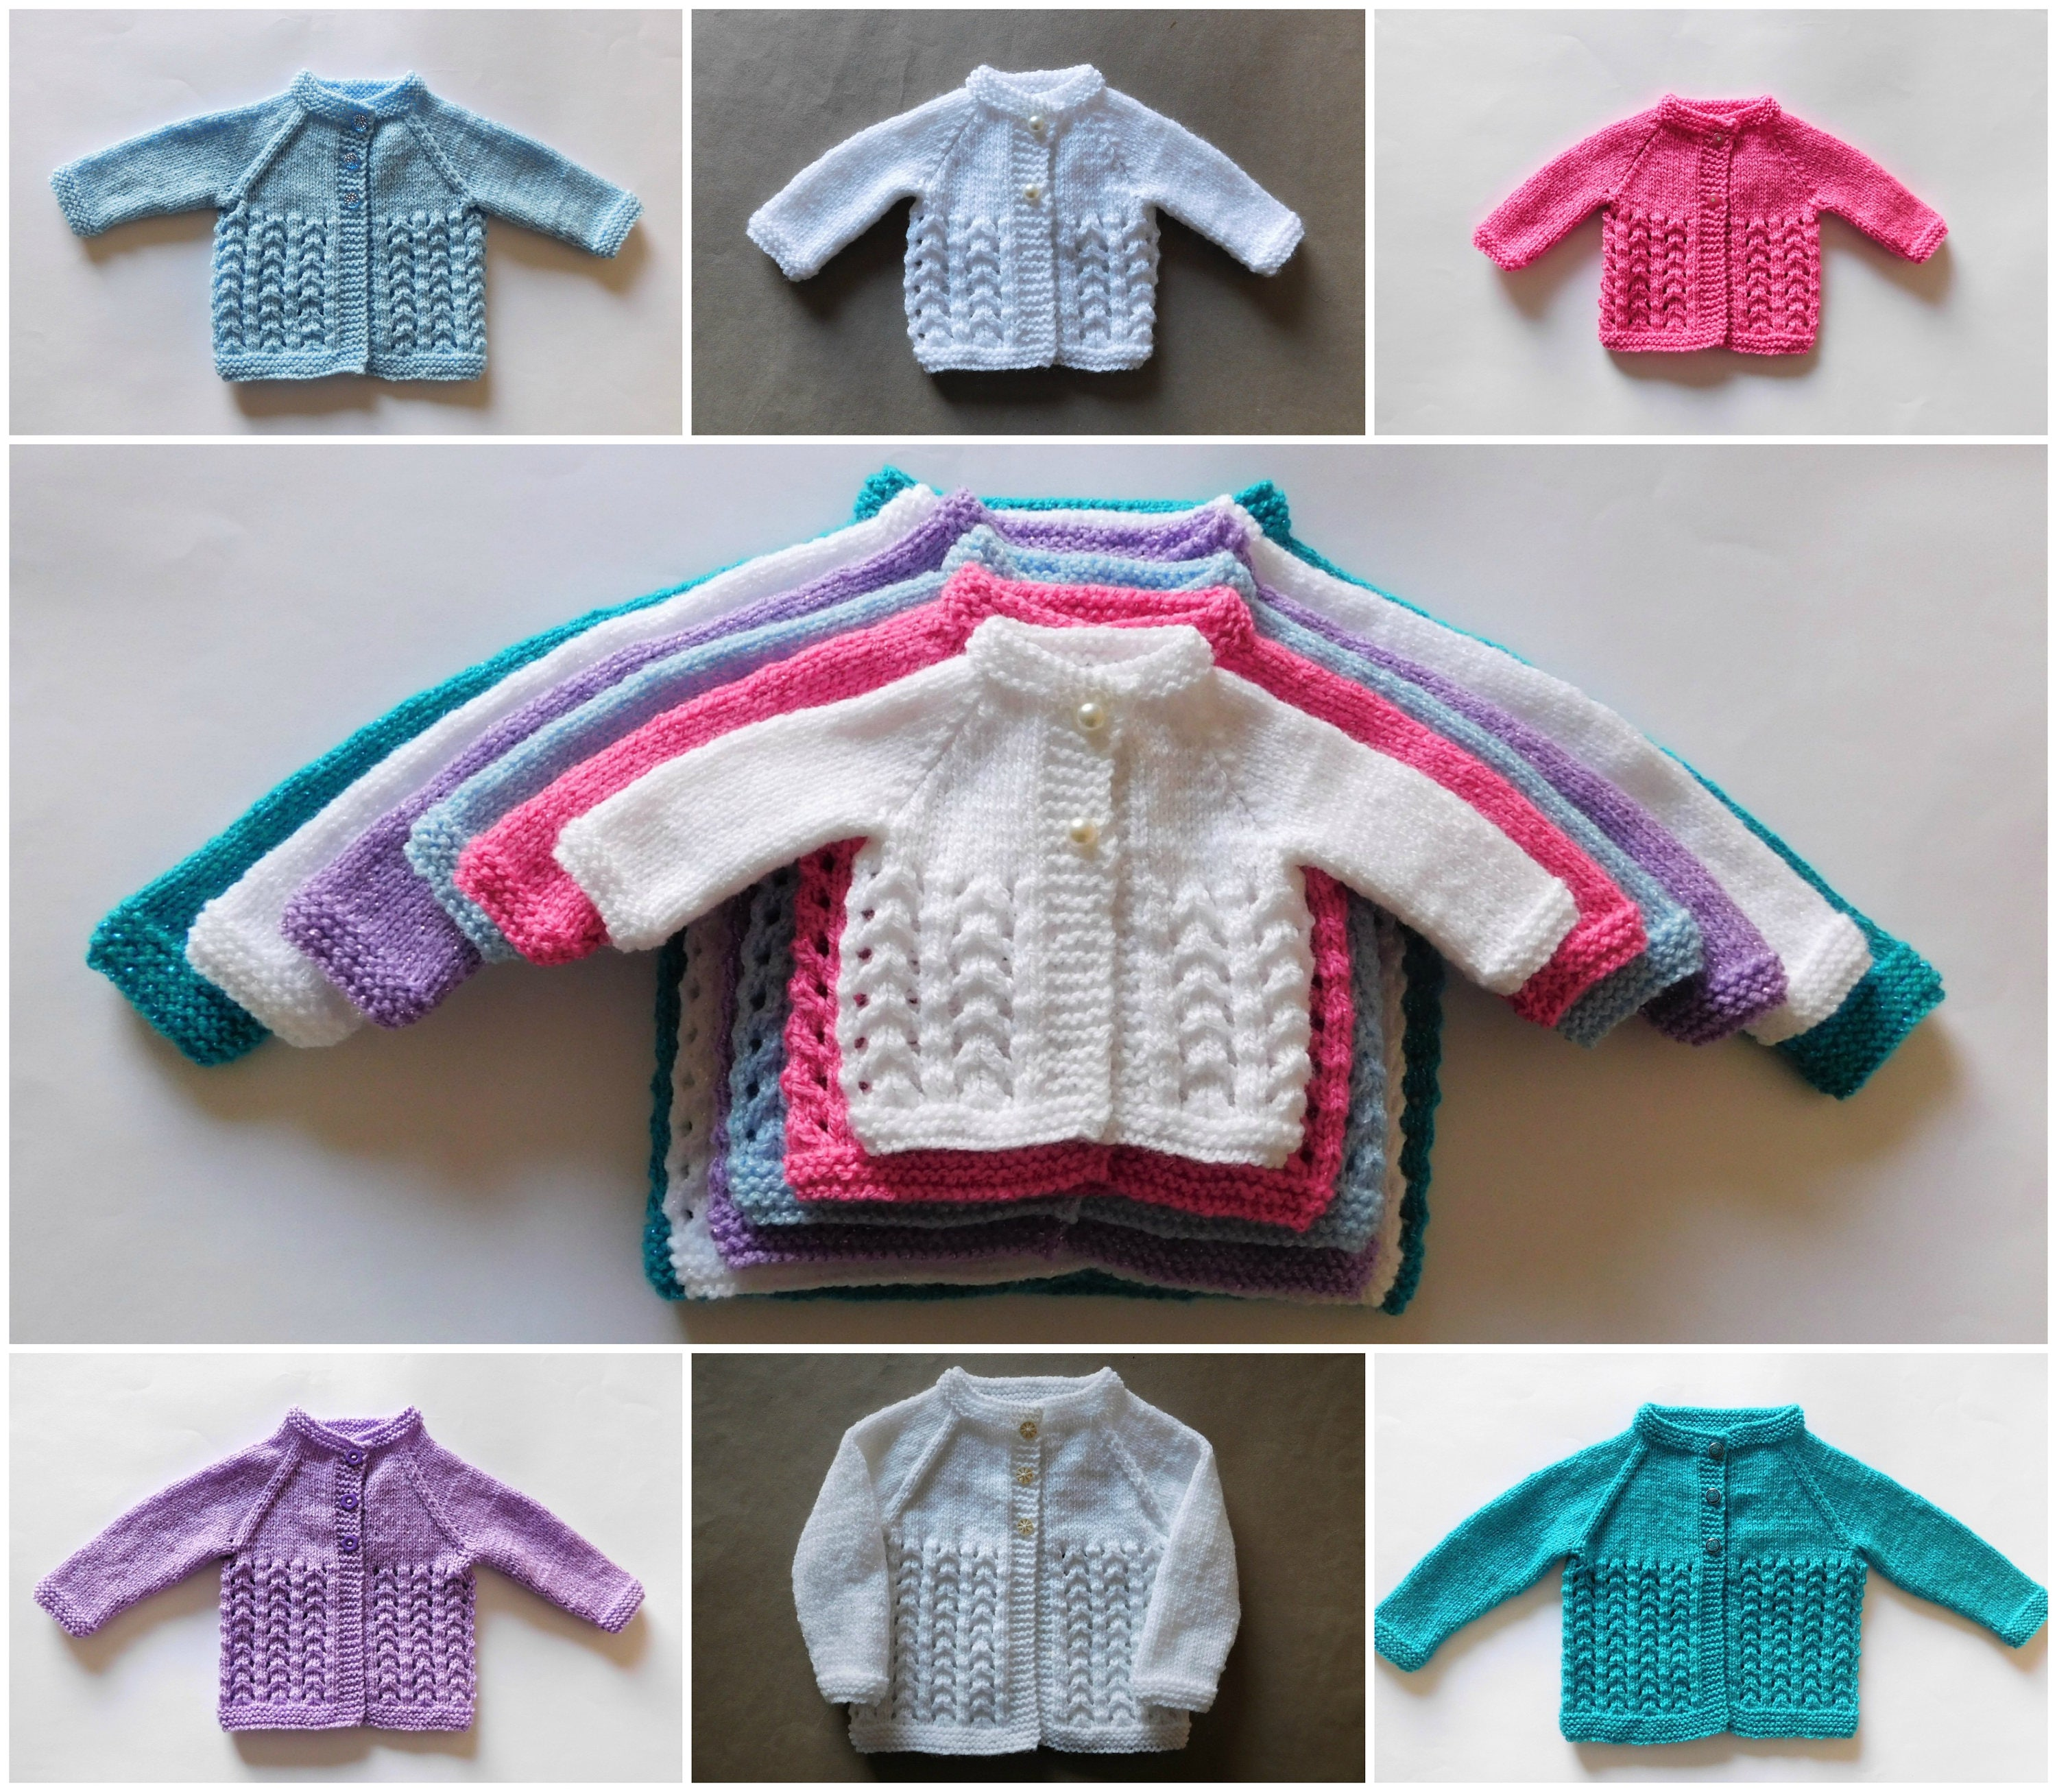 d9d9a0bf114e Snowdrop Baby Cardigan Jacket Knitting Pattern